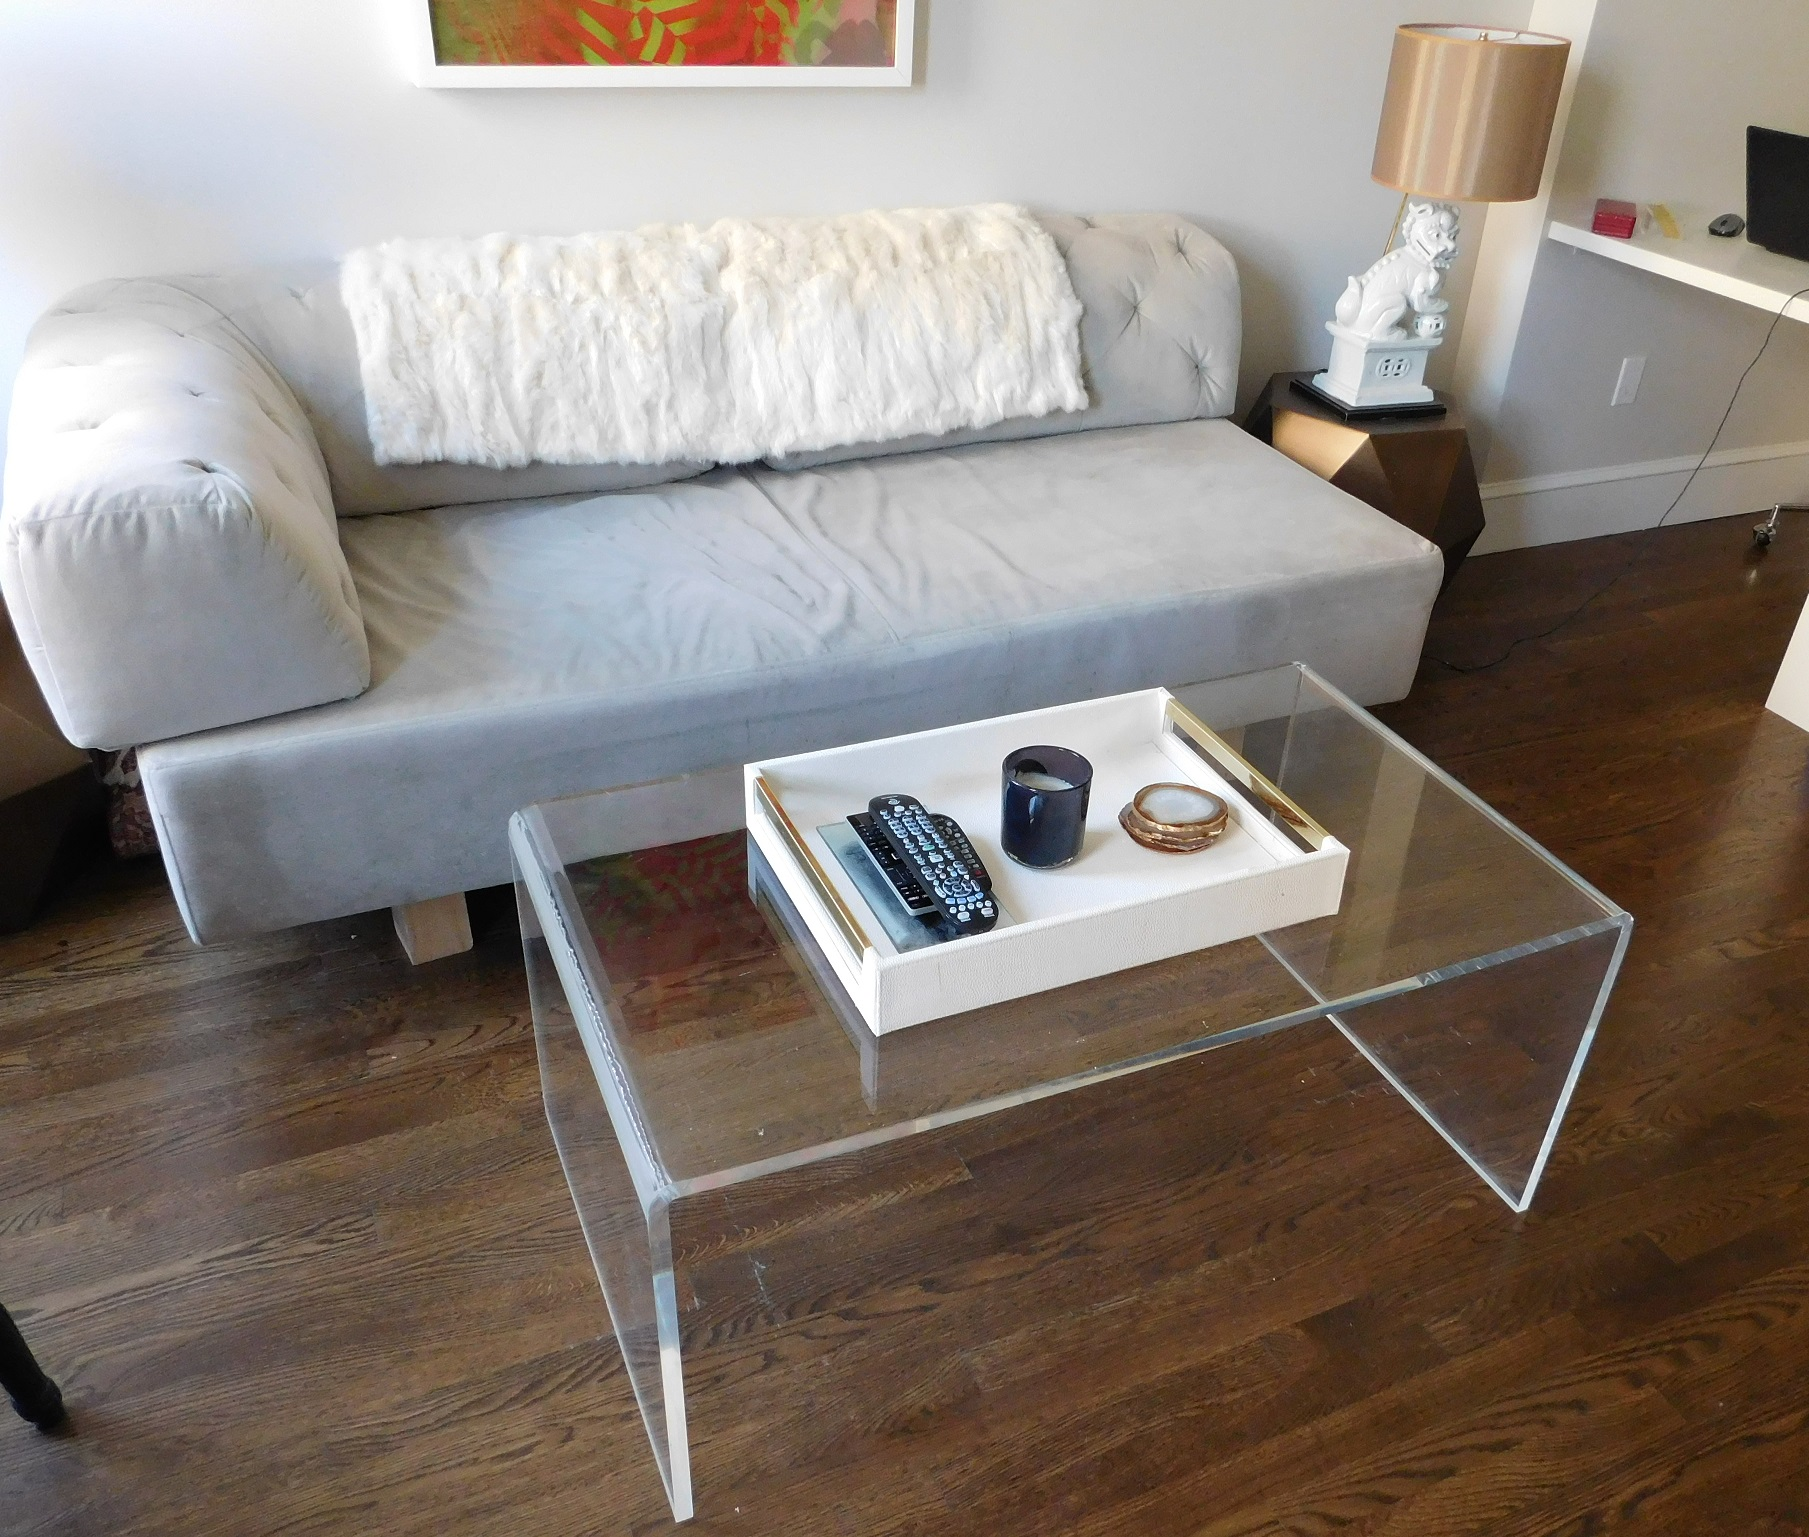 Coffee Table-Waterfall edge_short